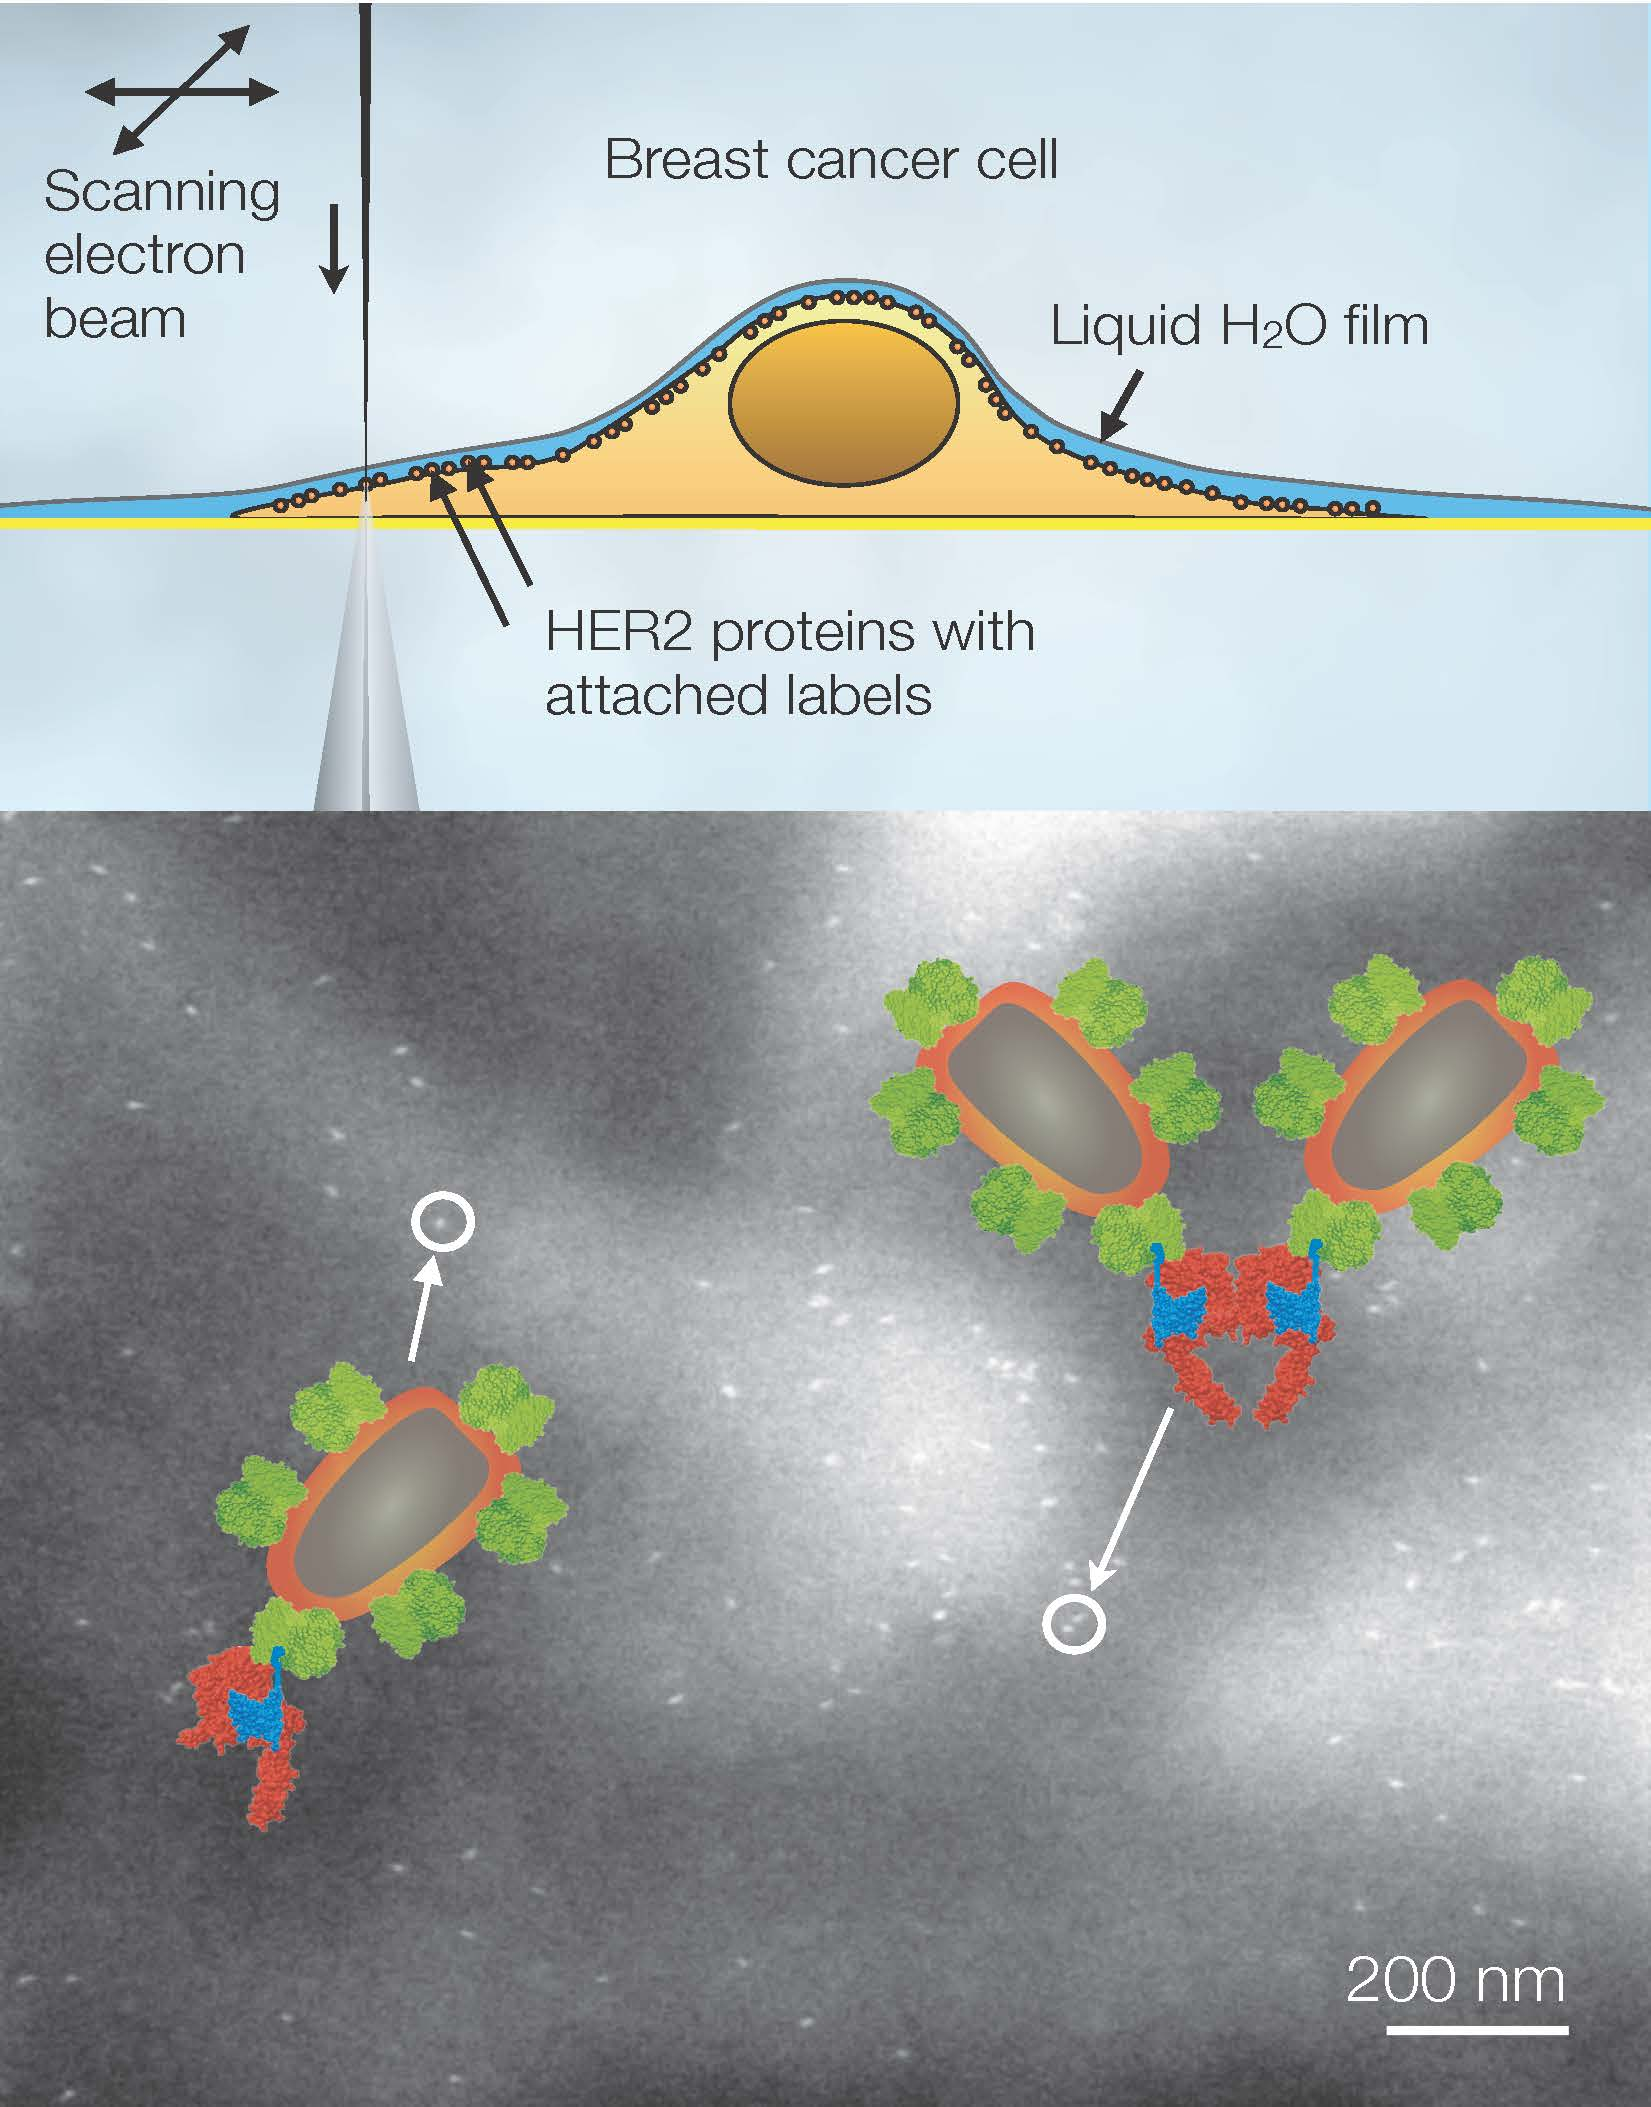 Liquid-phase electron microscopy of HER2 membrane proteins in breast cancer cells. (Top) Principle of operation via scanning an electron beam over a cell grown on a thin supporting membrane. The cell is covered below a thin water film. Contrast is obtained on nanoparticle protein labels. (Bottom) Image showing the locations of individual nanoparticle labels attached to HER2 receptors visible as the bright spots. Signaling-active dimers (pairs) are visible as well as inactive monomers (e.g., at the arrowheads). The overlay shows molecular models of HER2 monomer and dimer with labels. Modified from Sci. Adv. 1:e1500165, 2015.